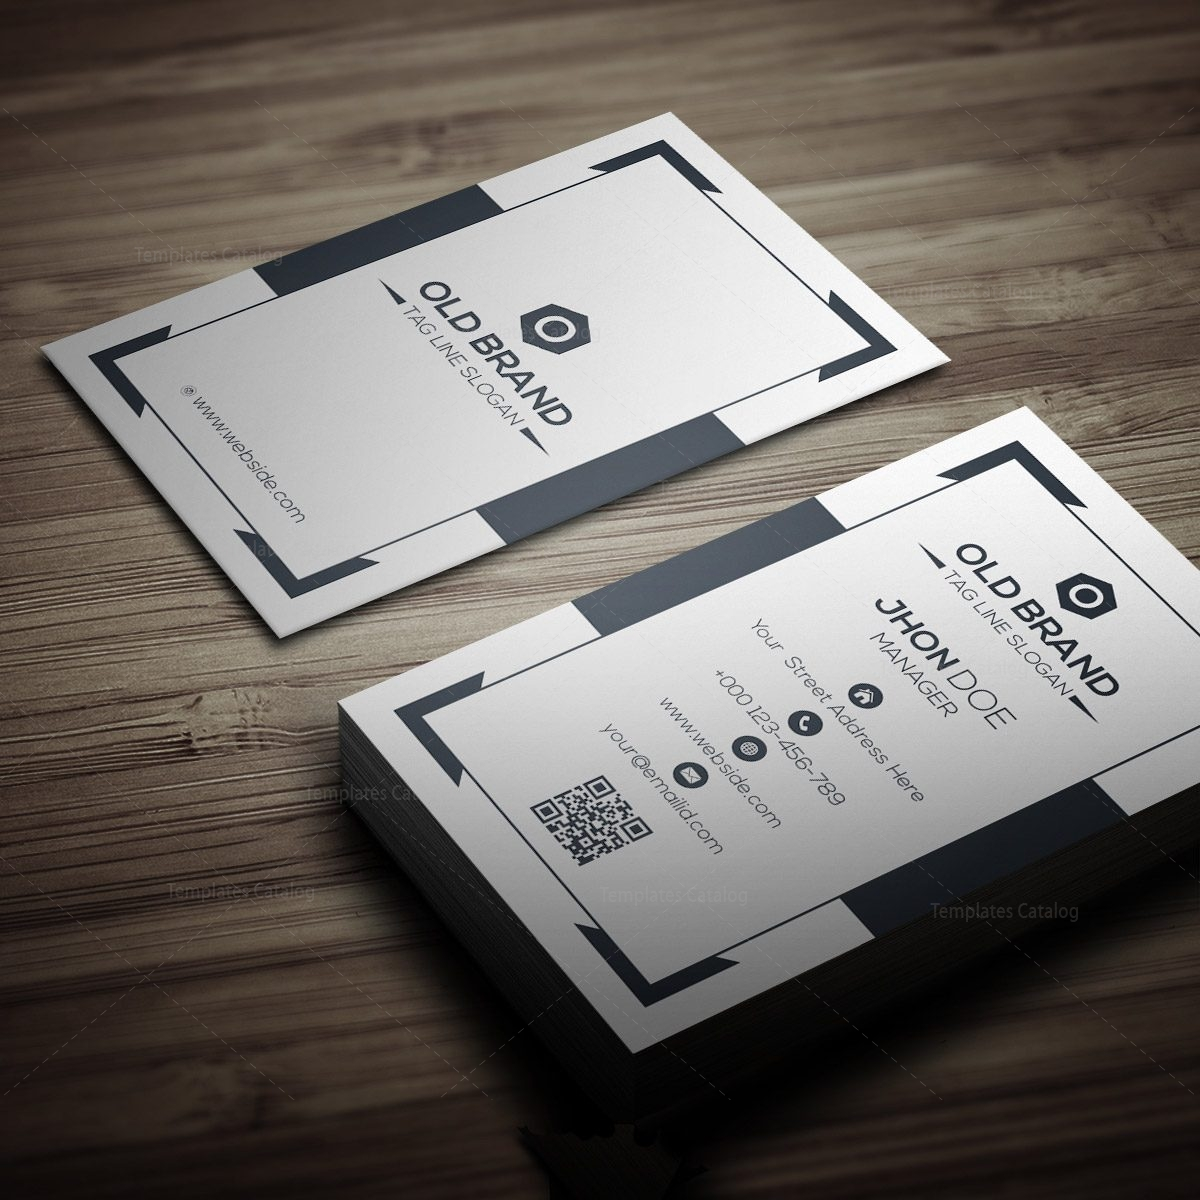 Classic Vertical Business Card Template 000271 - Template Catalog